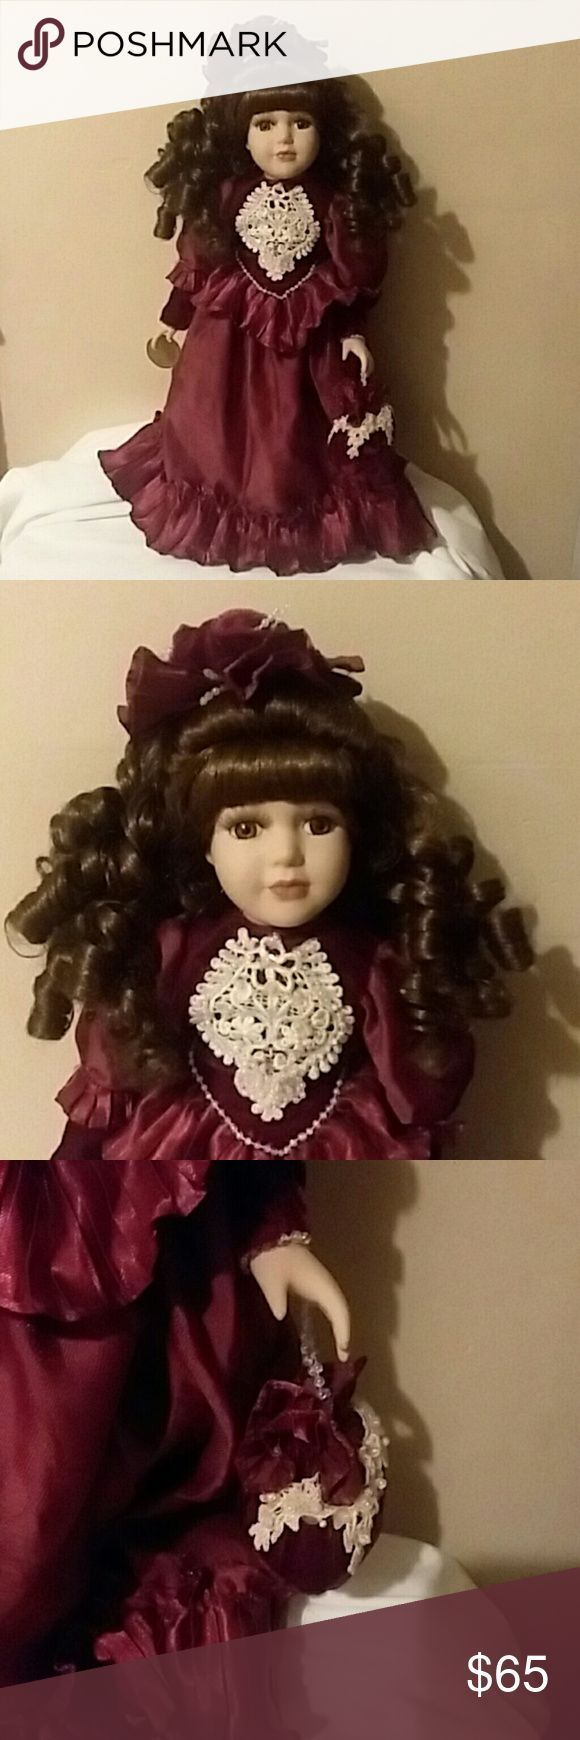 Porcelin doll 18 inch geourgous porcelin doll. Maroon  dress. Brown hair and eye... #dollvictoriandressstyles